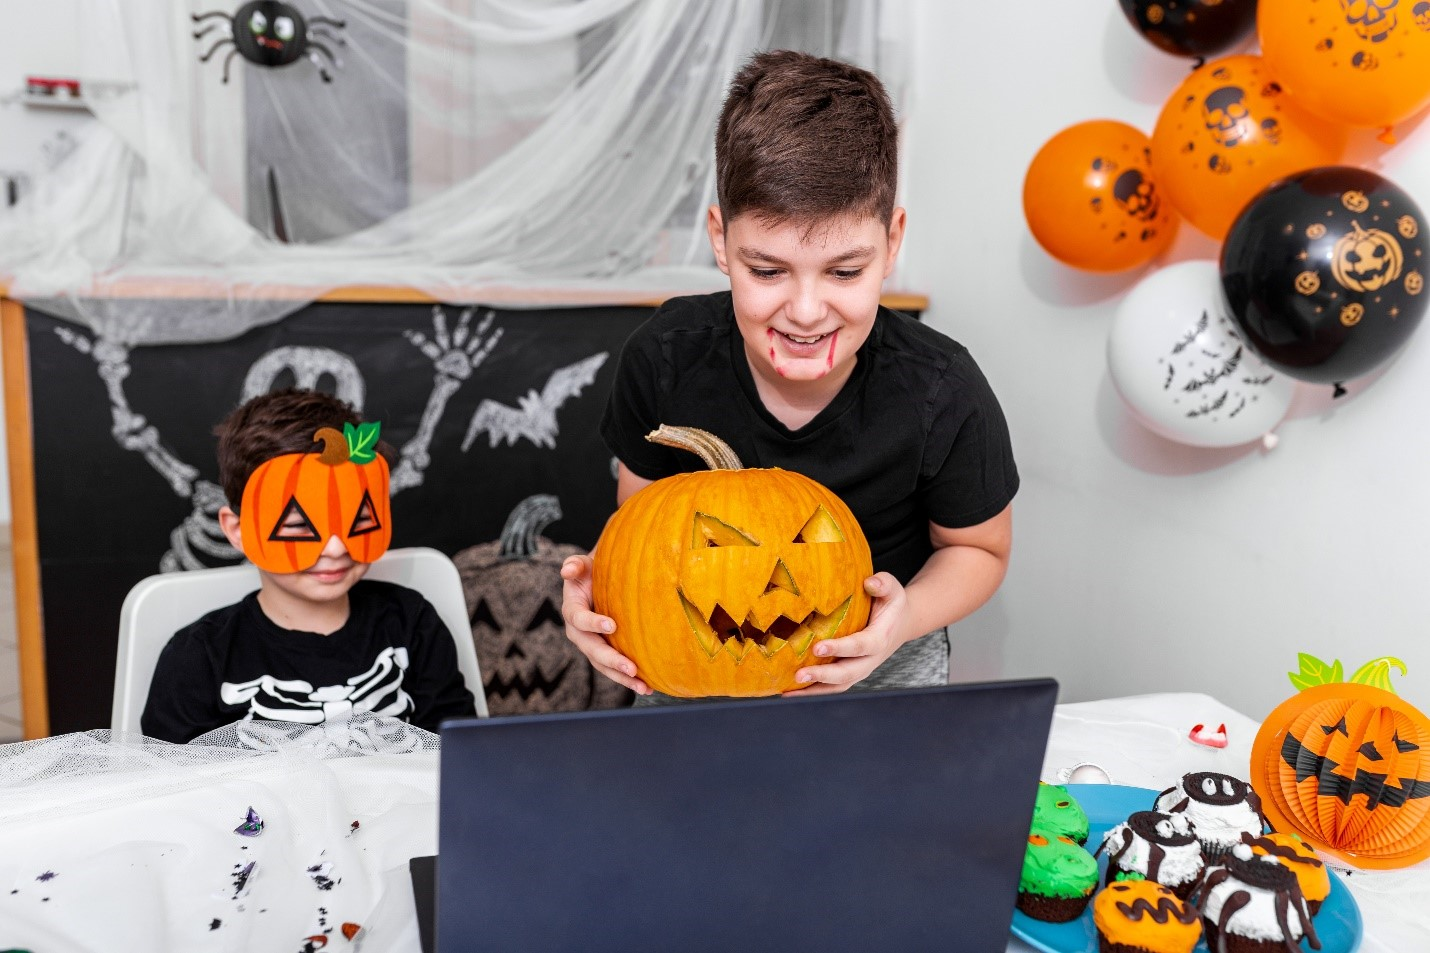 A boy with a laptop, smiling. Halloween decorations behind him.